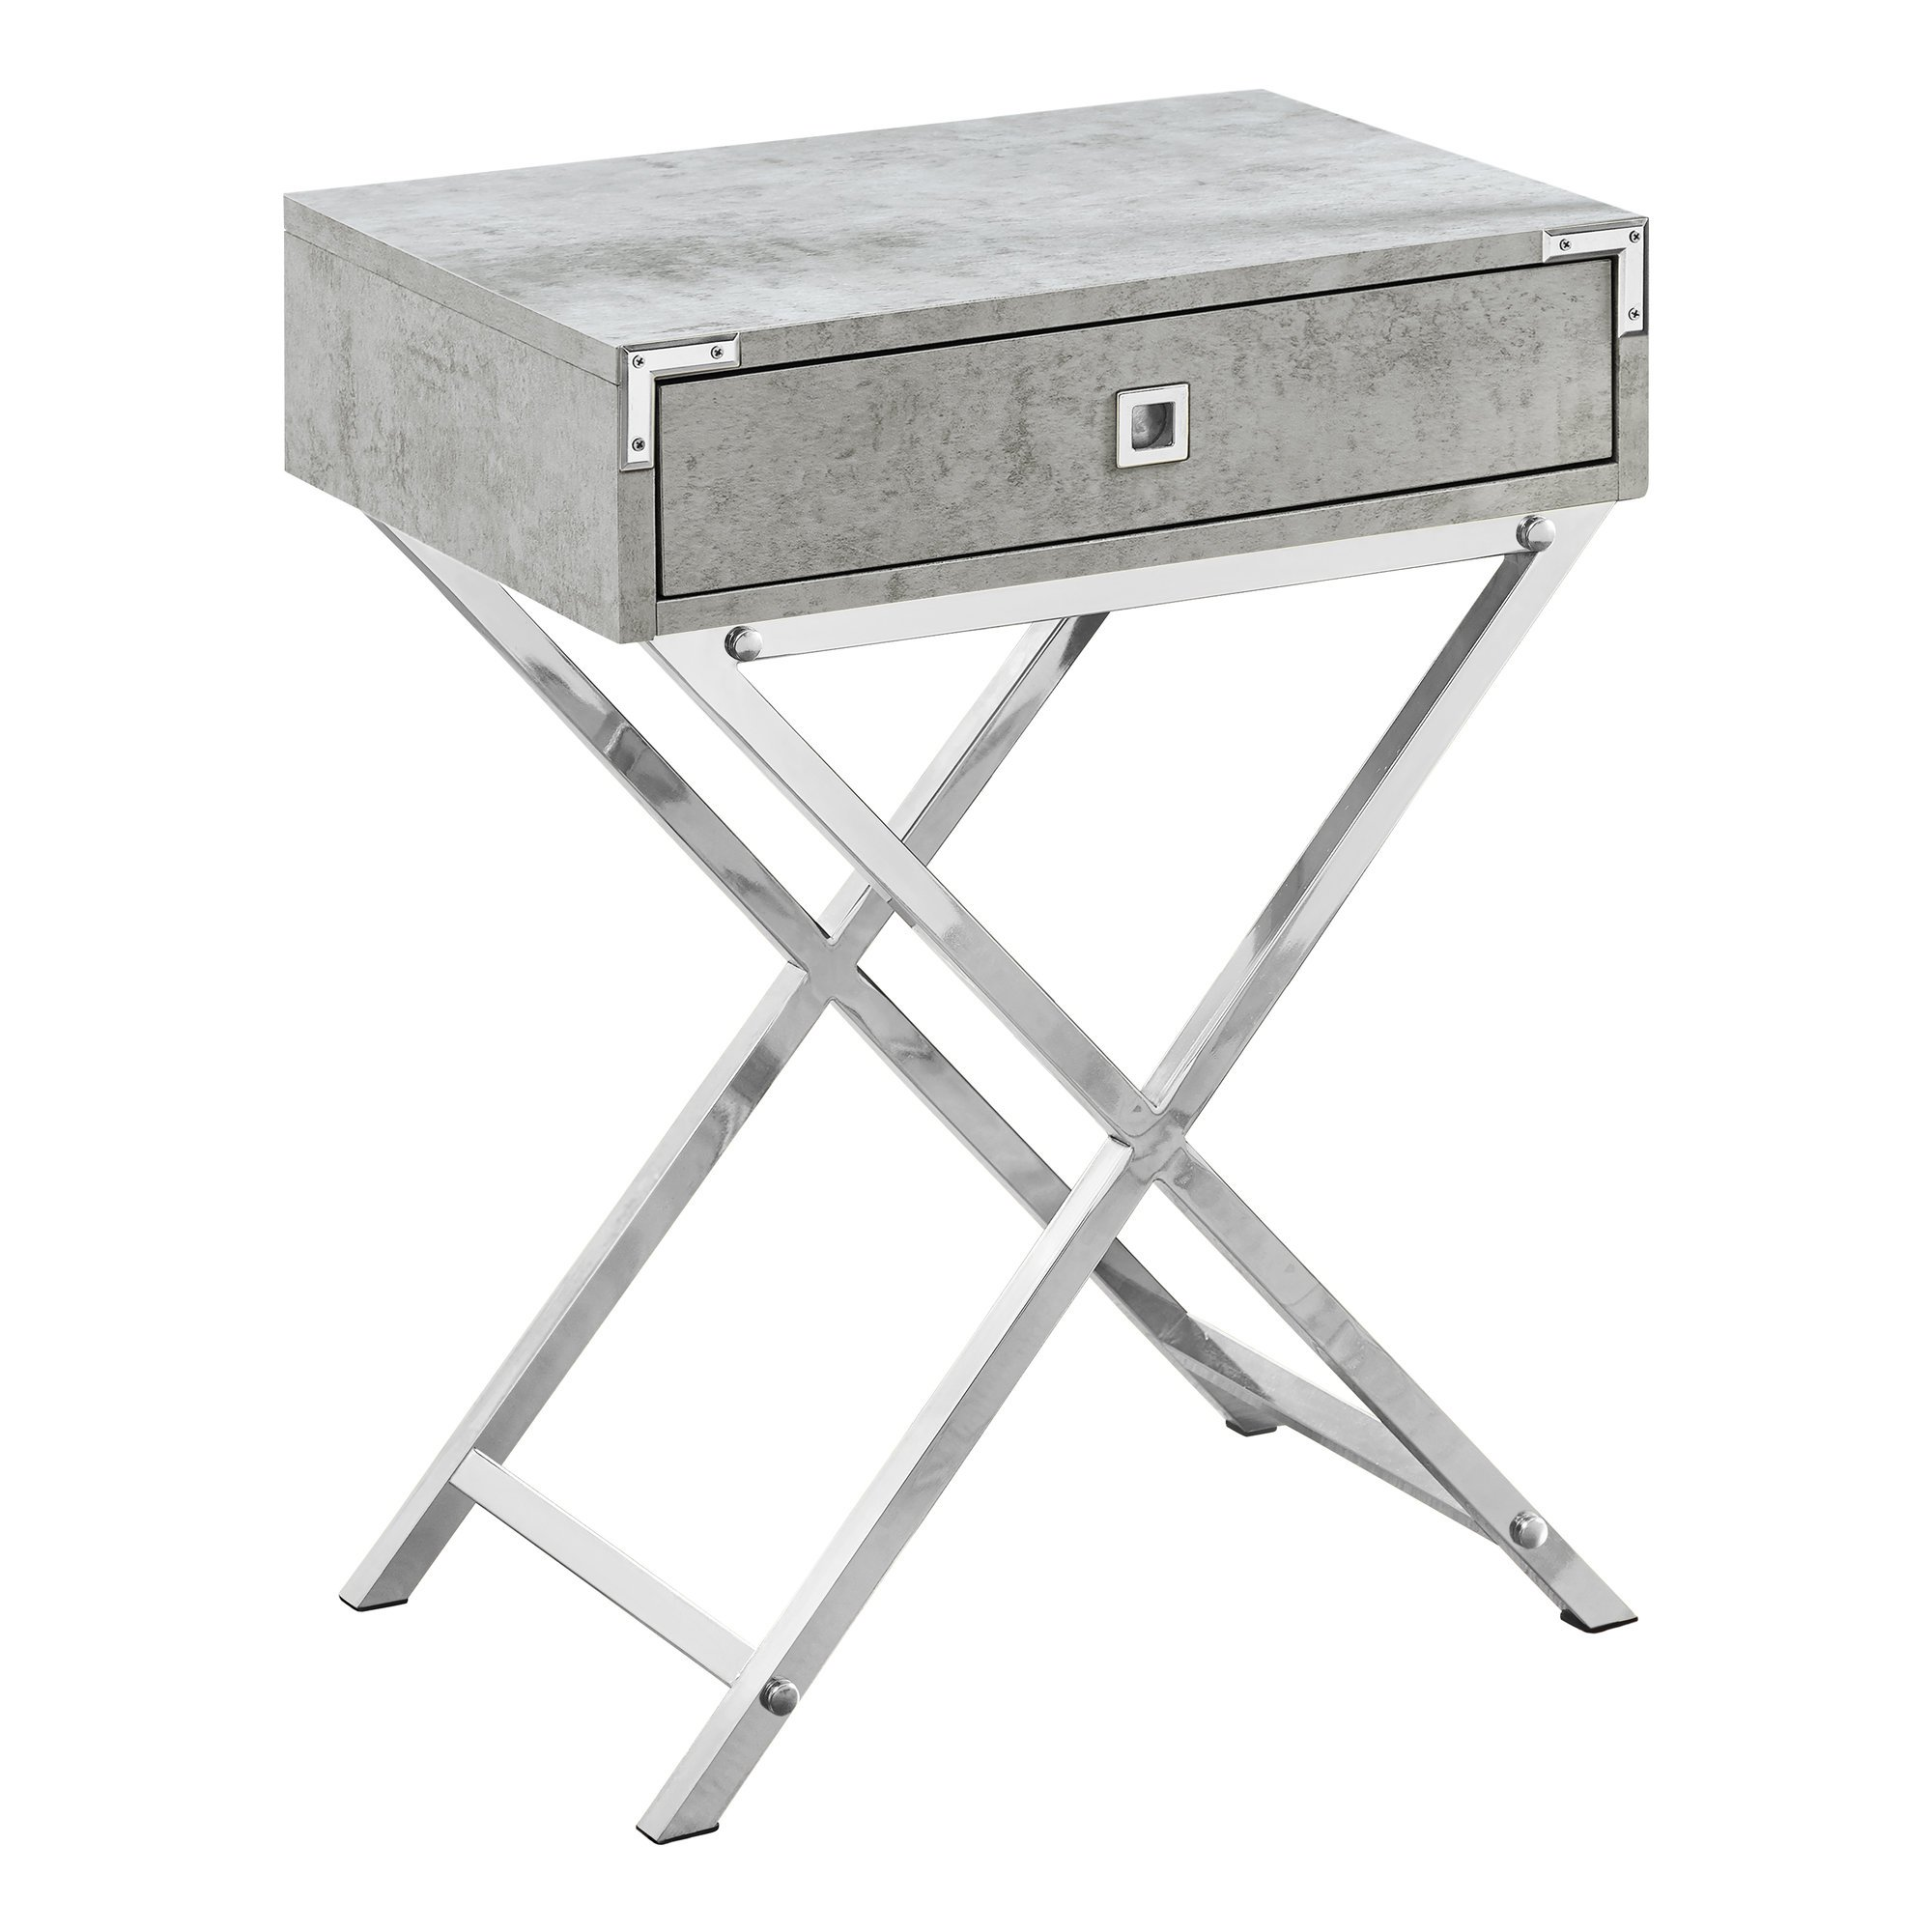 monarch mdf and metal accent table grey finish gwg floor threshold transitions large marble top coffee home goods end tables made small retro high back dining chairs smoked glass